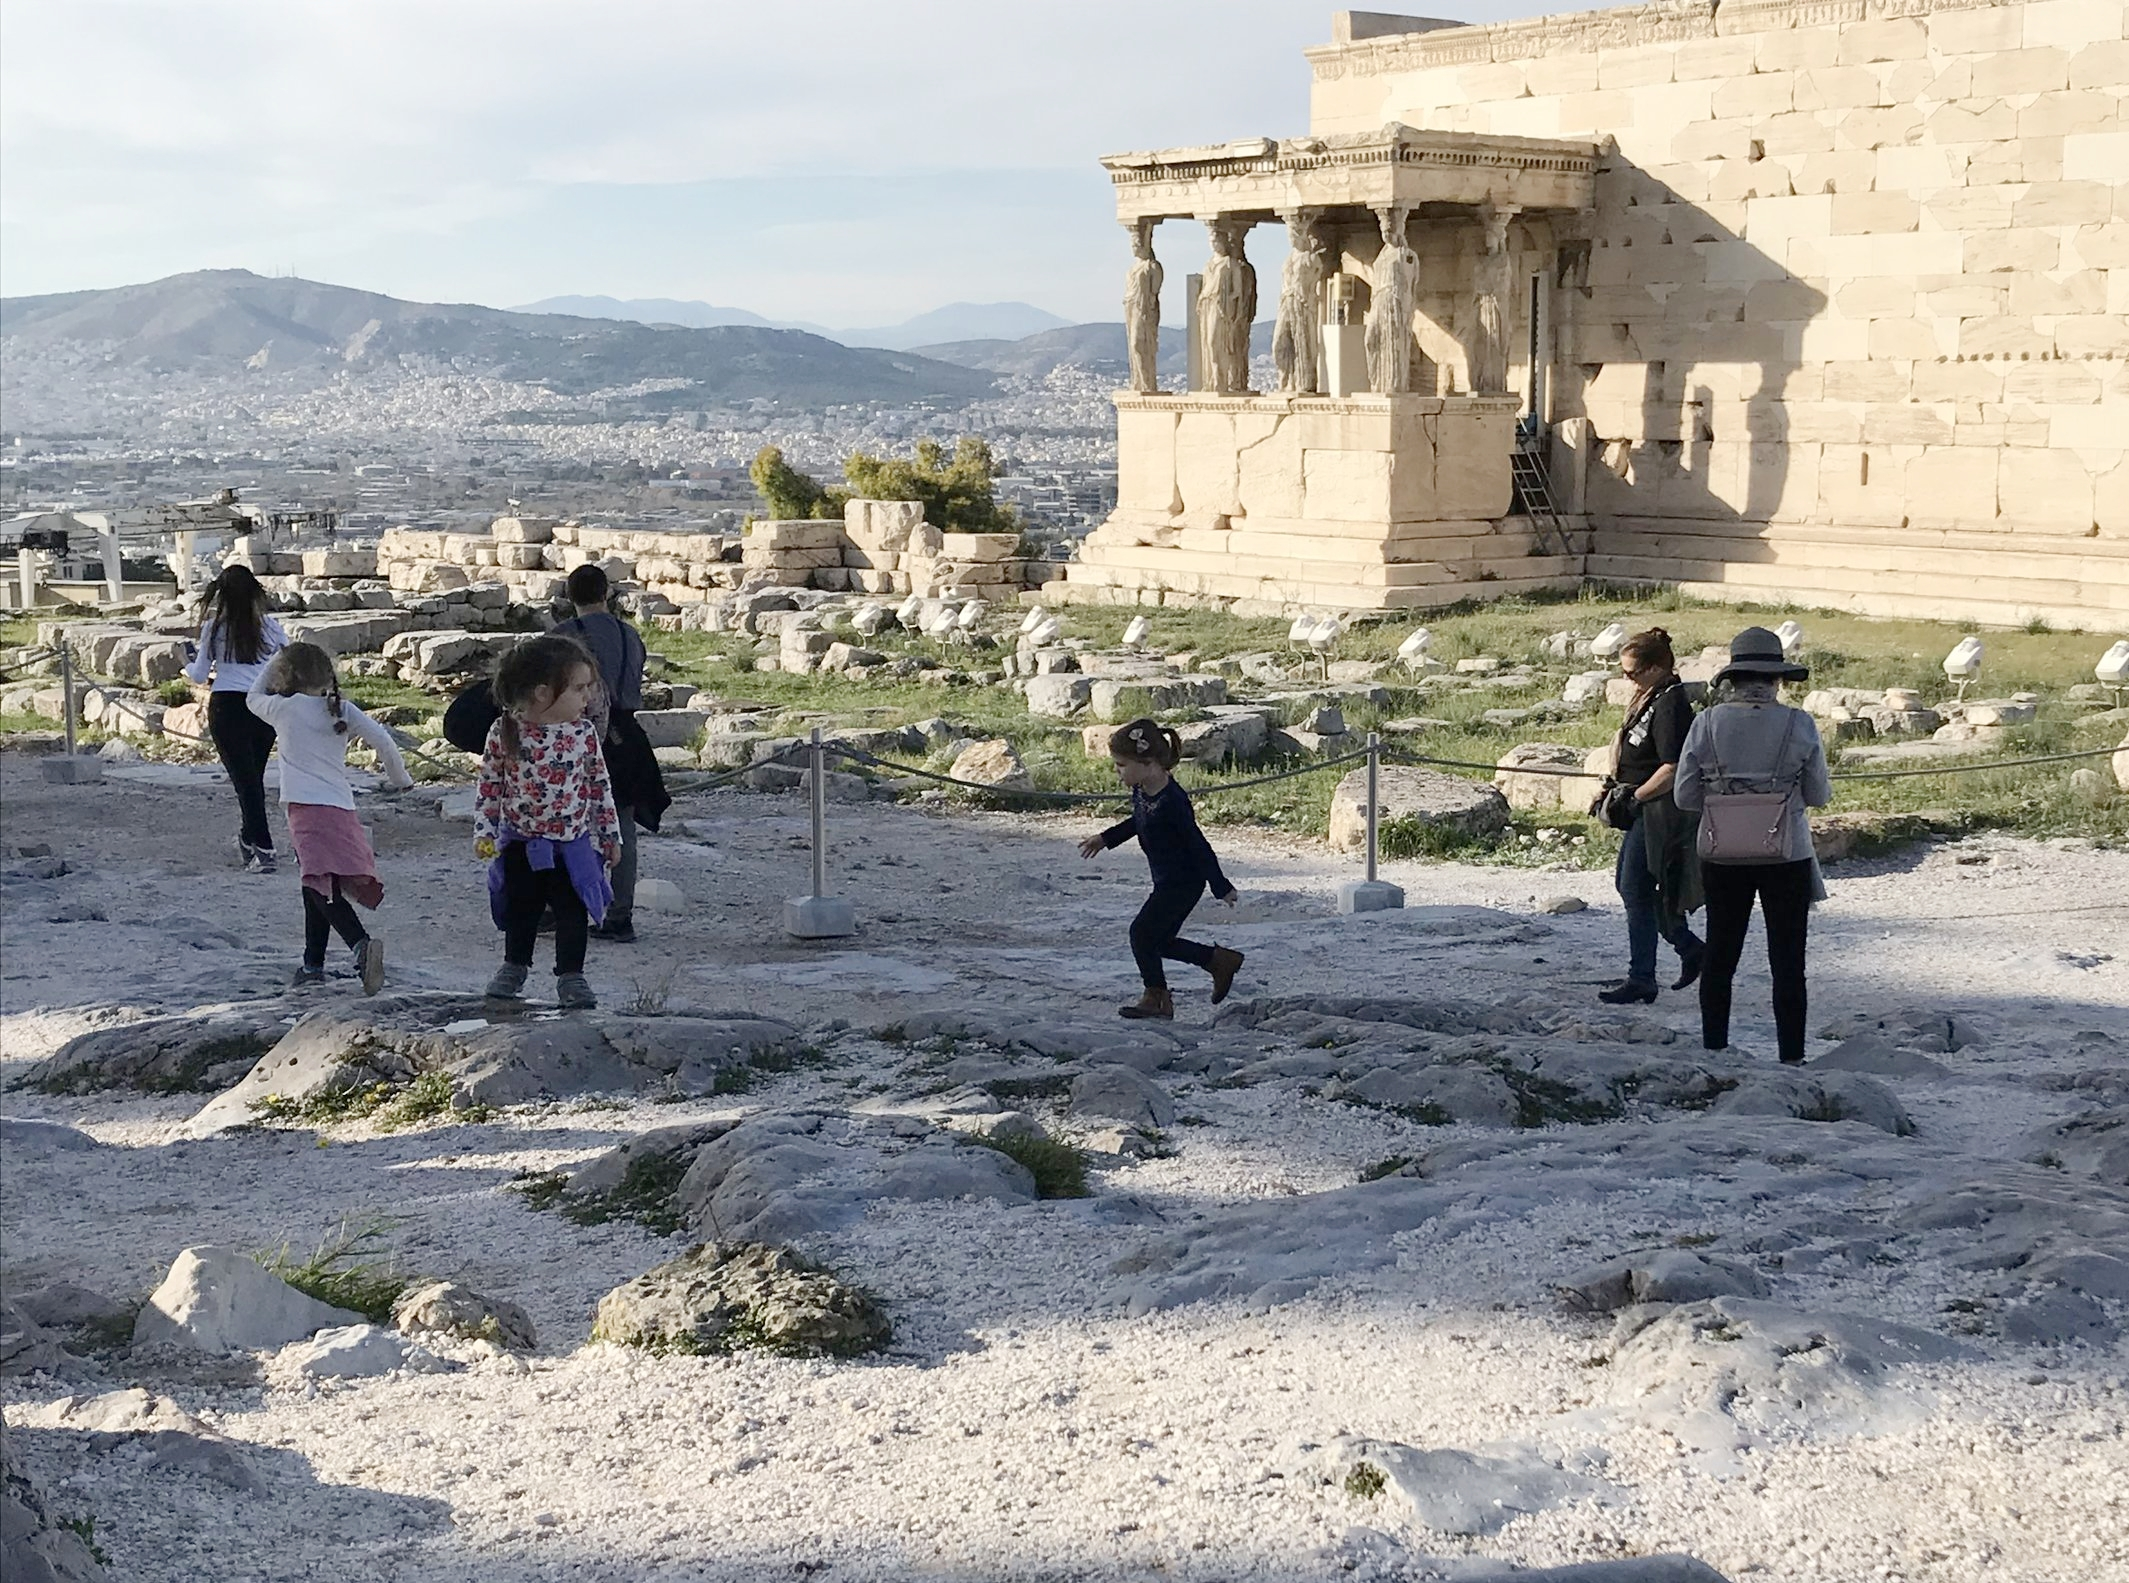 Our 4 little girls (3 pictured here) had tons of room to move around the Acropolis during the off-season in Athens